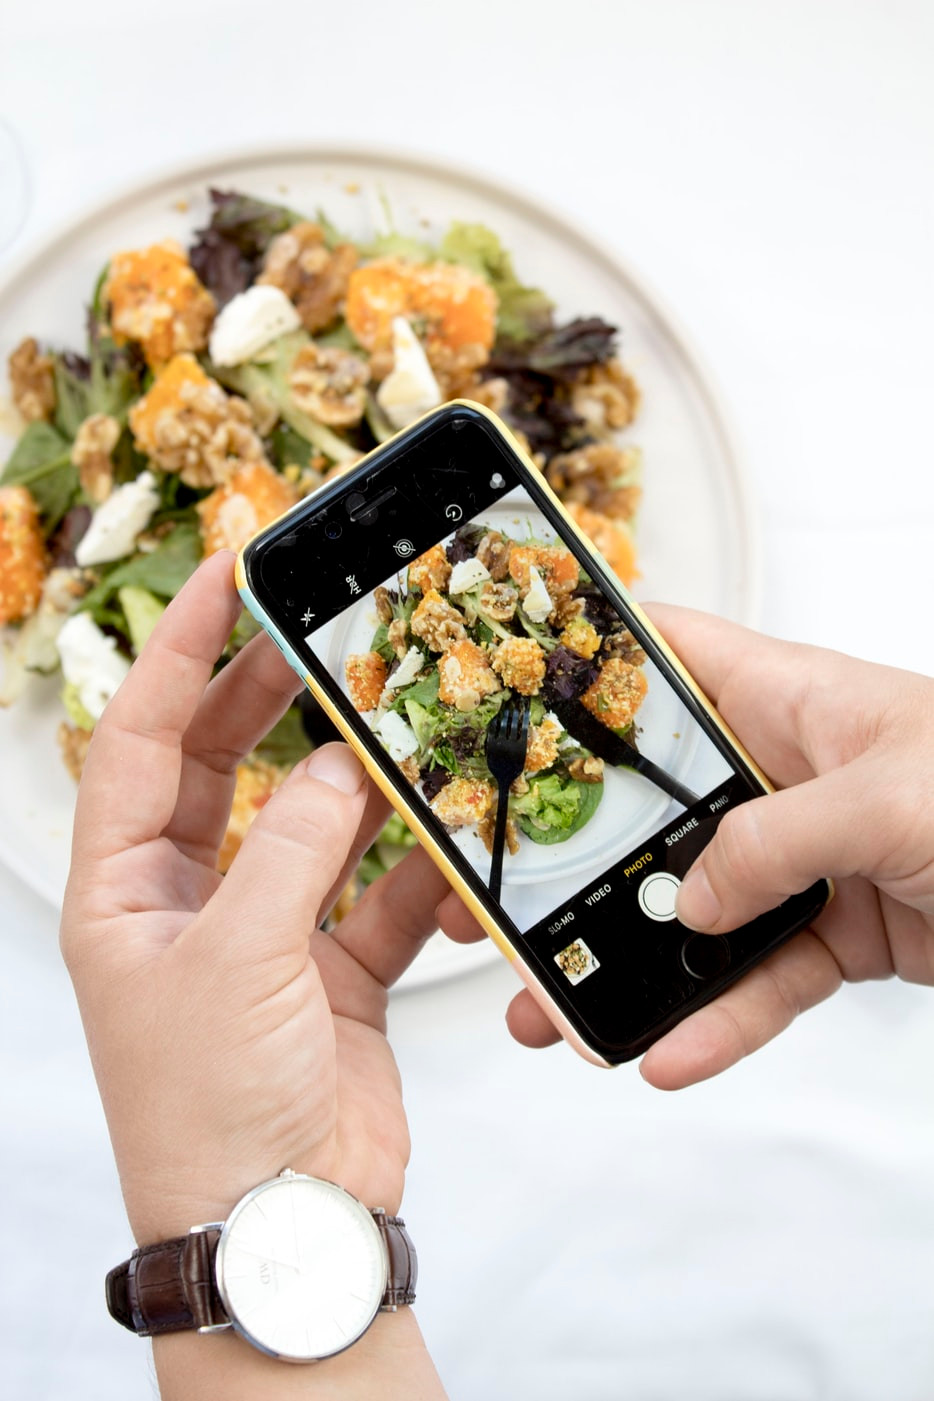 The Effects Social Media Can Have On Our Eating Habits: Two Sides of The Same Coin Femie Magazine